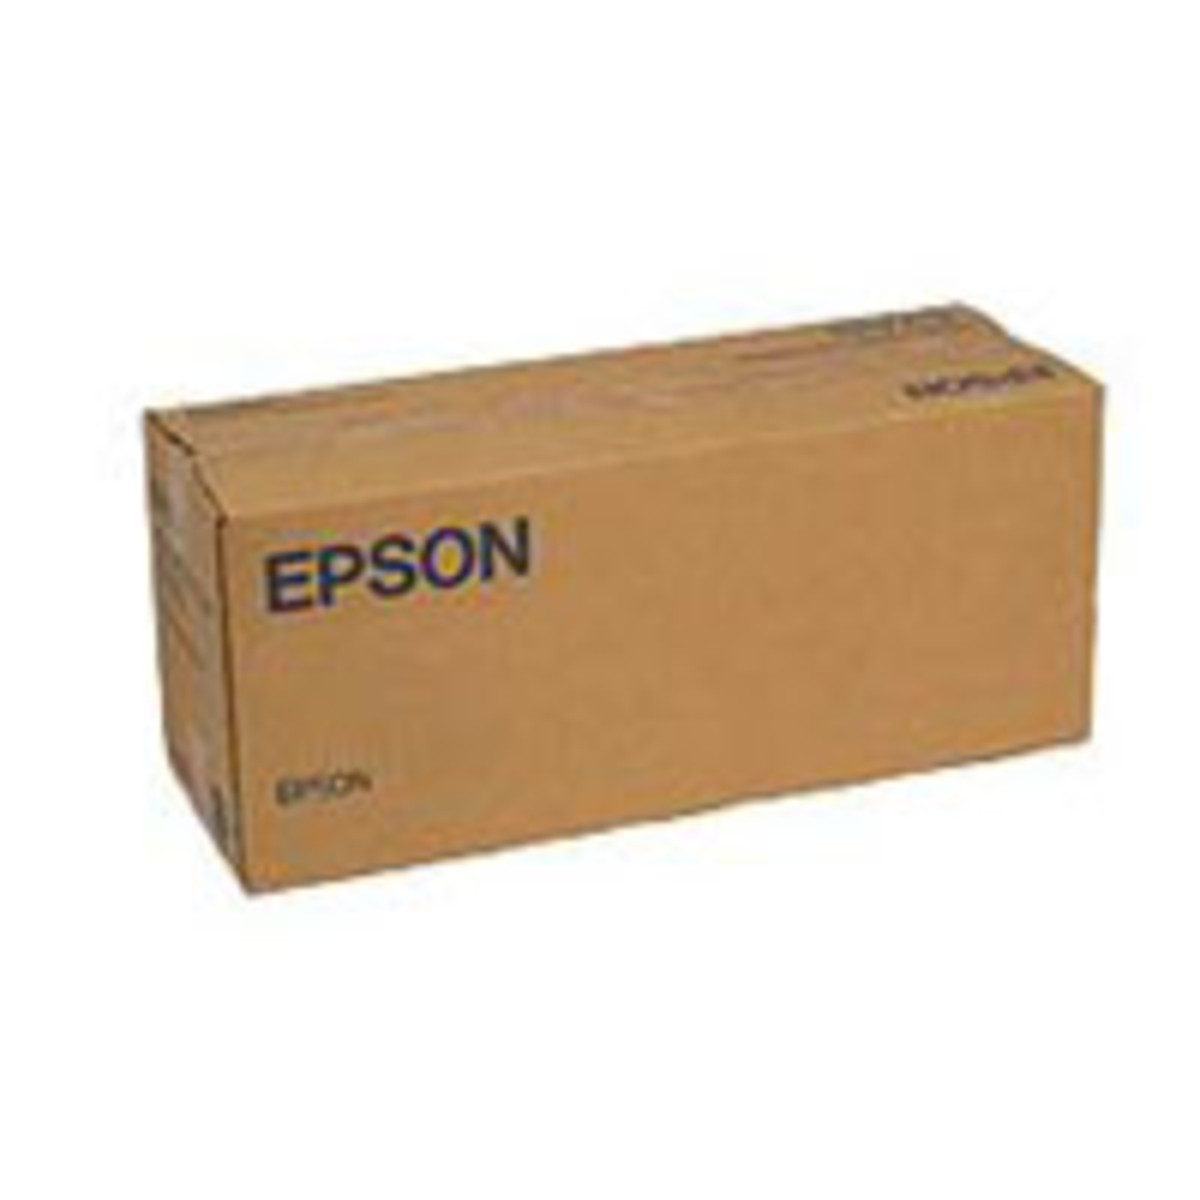 Epson S051083 Black Drum Unit